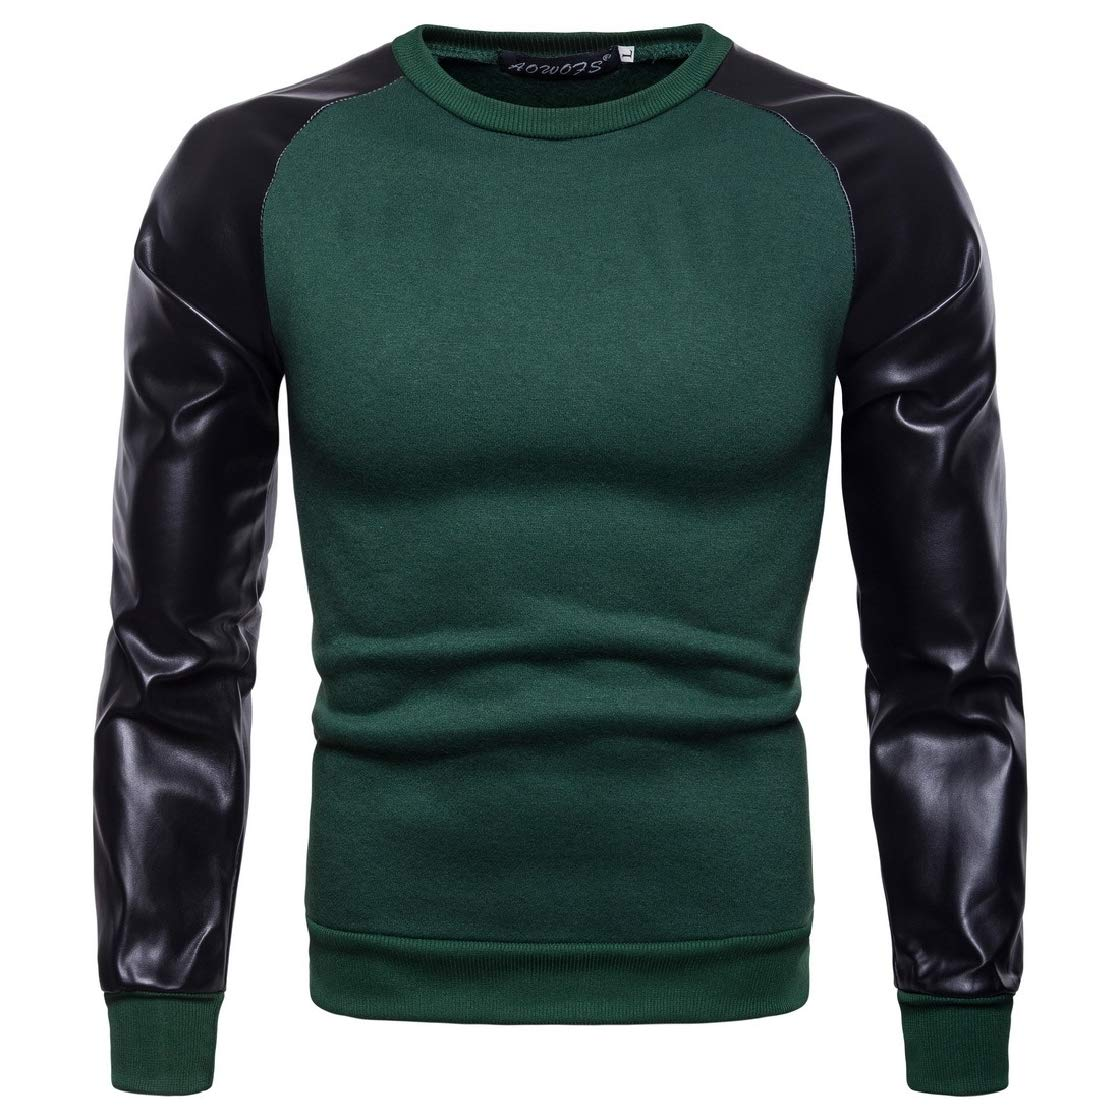 YUNY Mens Faux-Leather Pullover Plus Velvet Simple Splicing Sweatshirt Top Green M